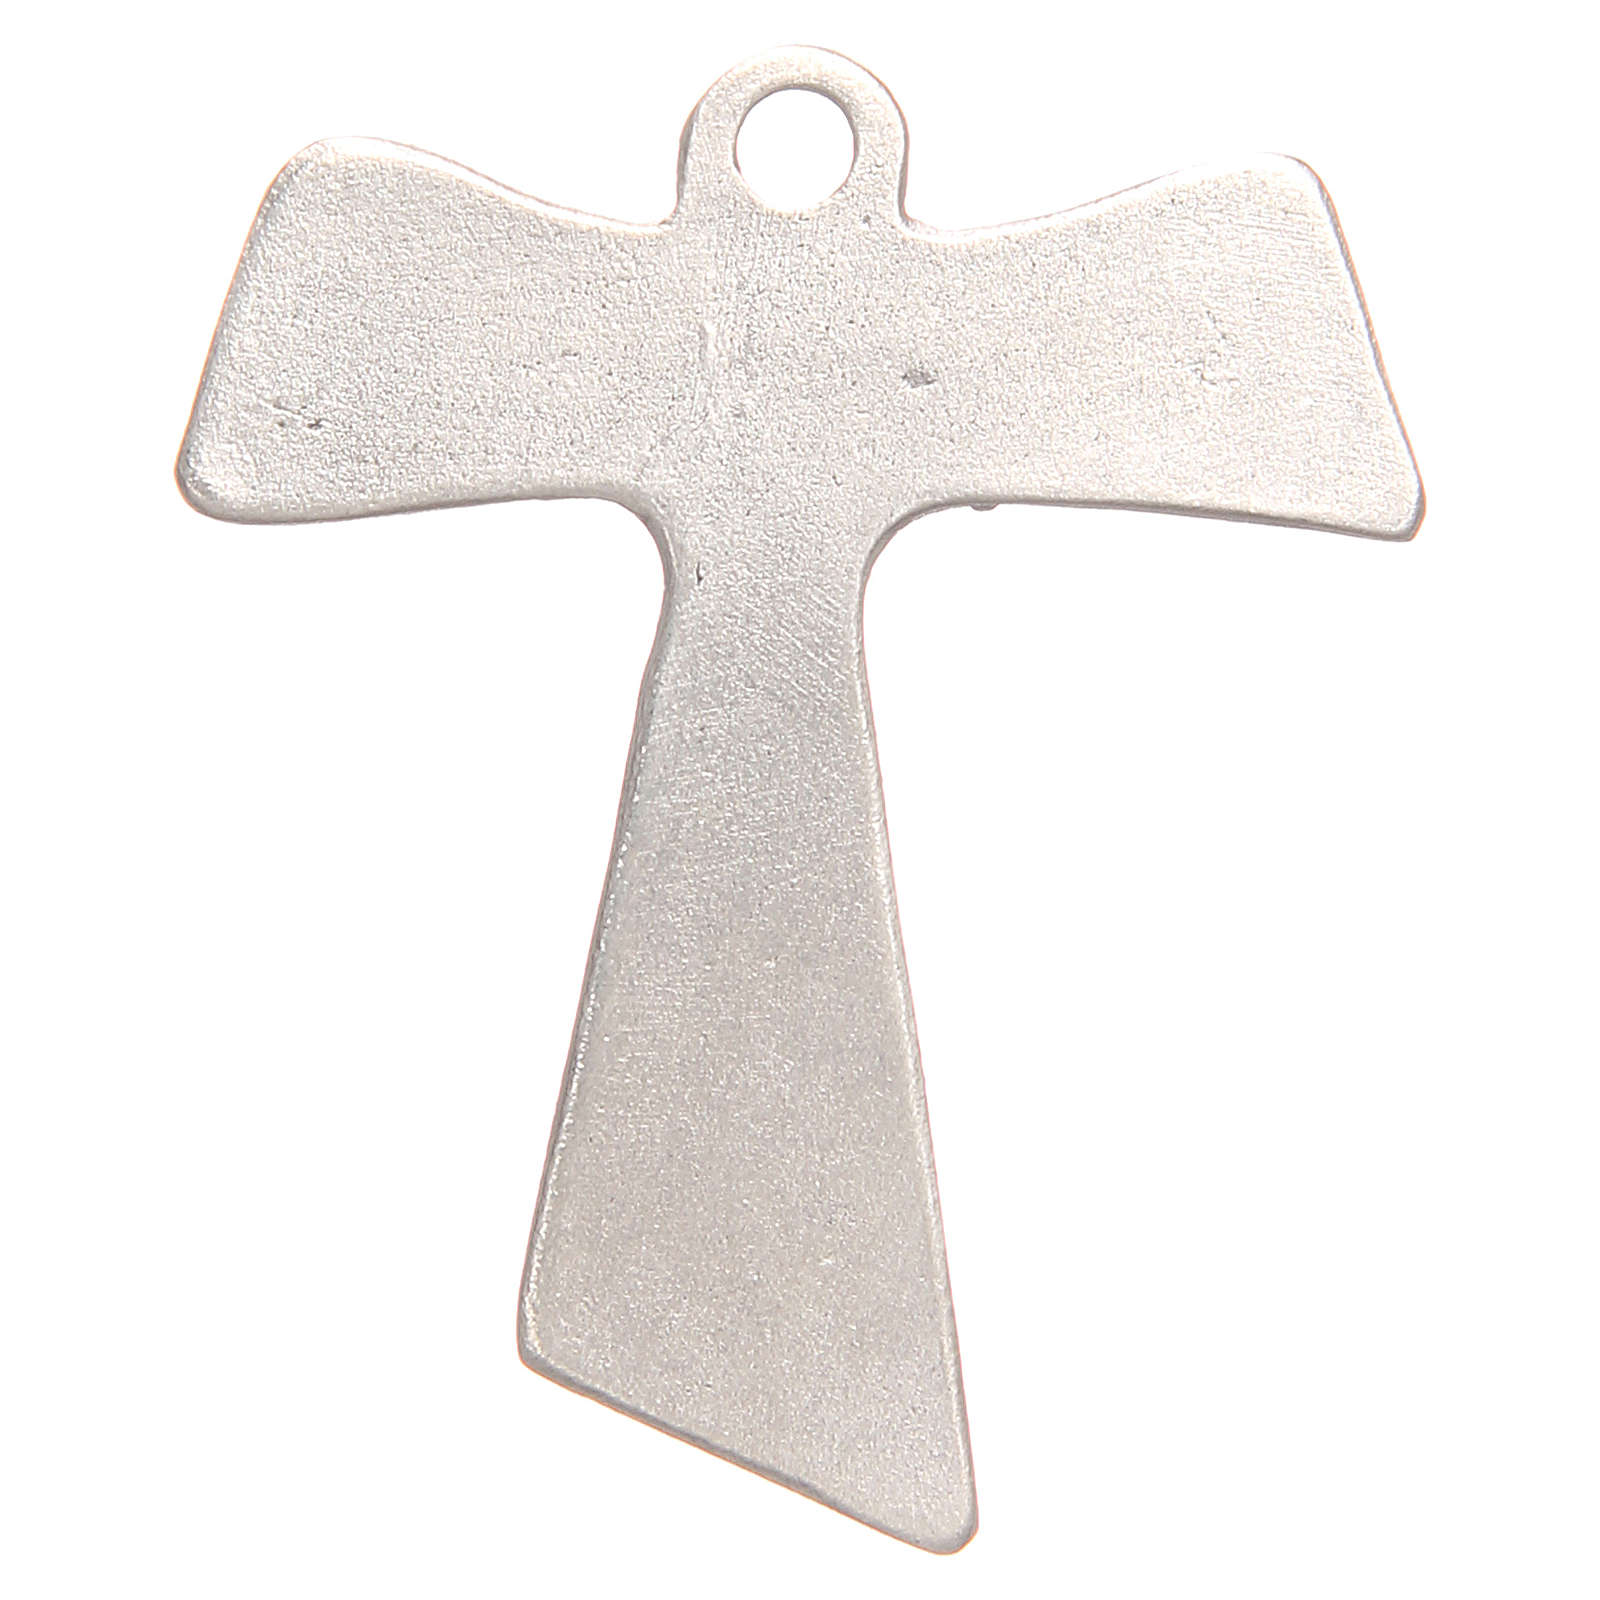 Tau cross with incision Pax et Bonum in antique silver with galvanic plating 4